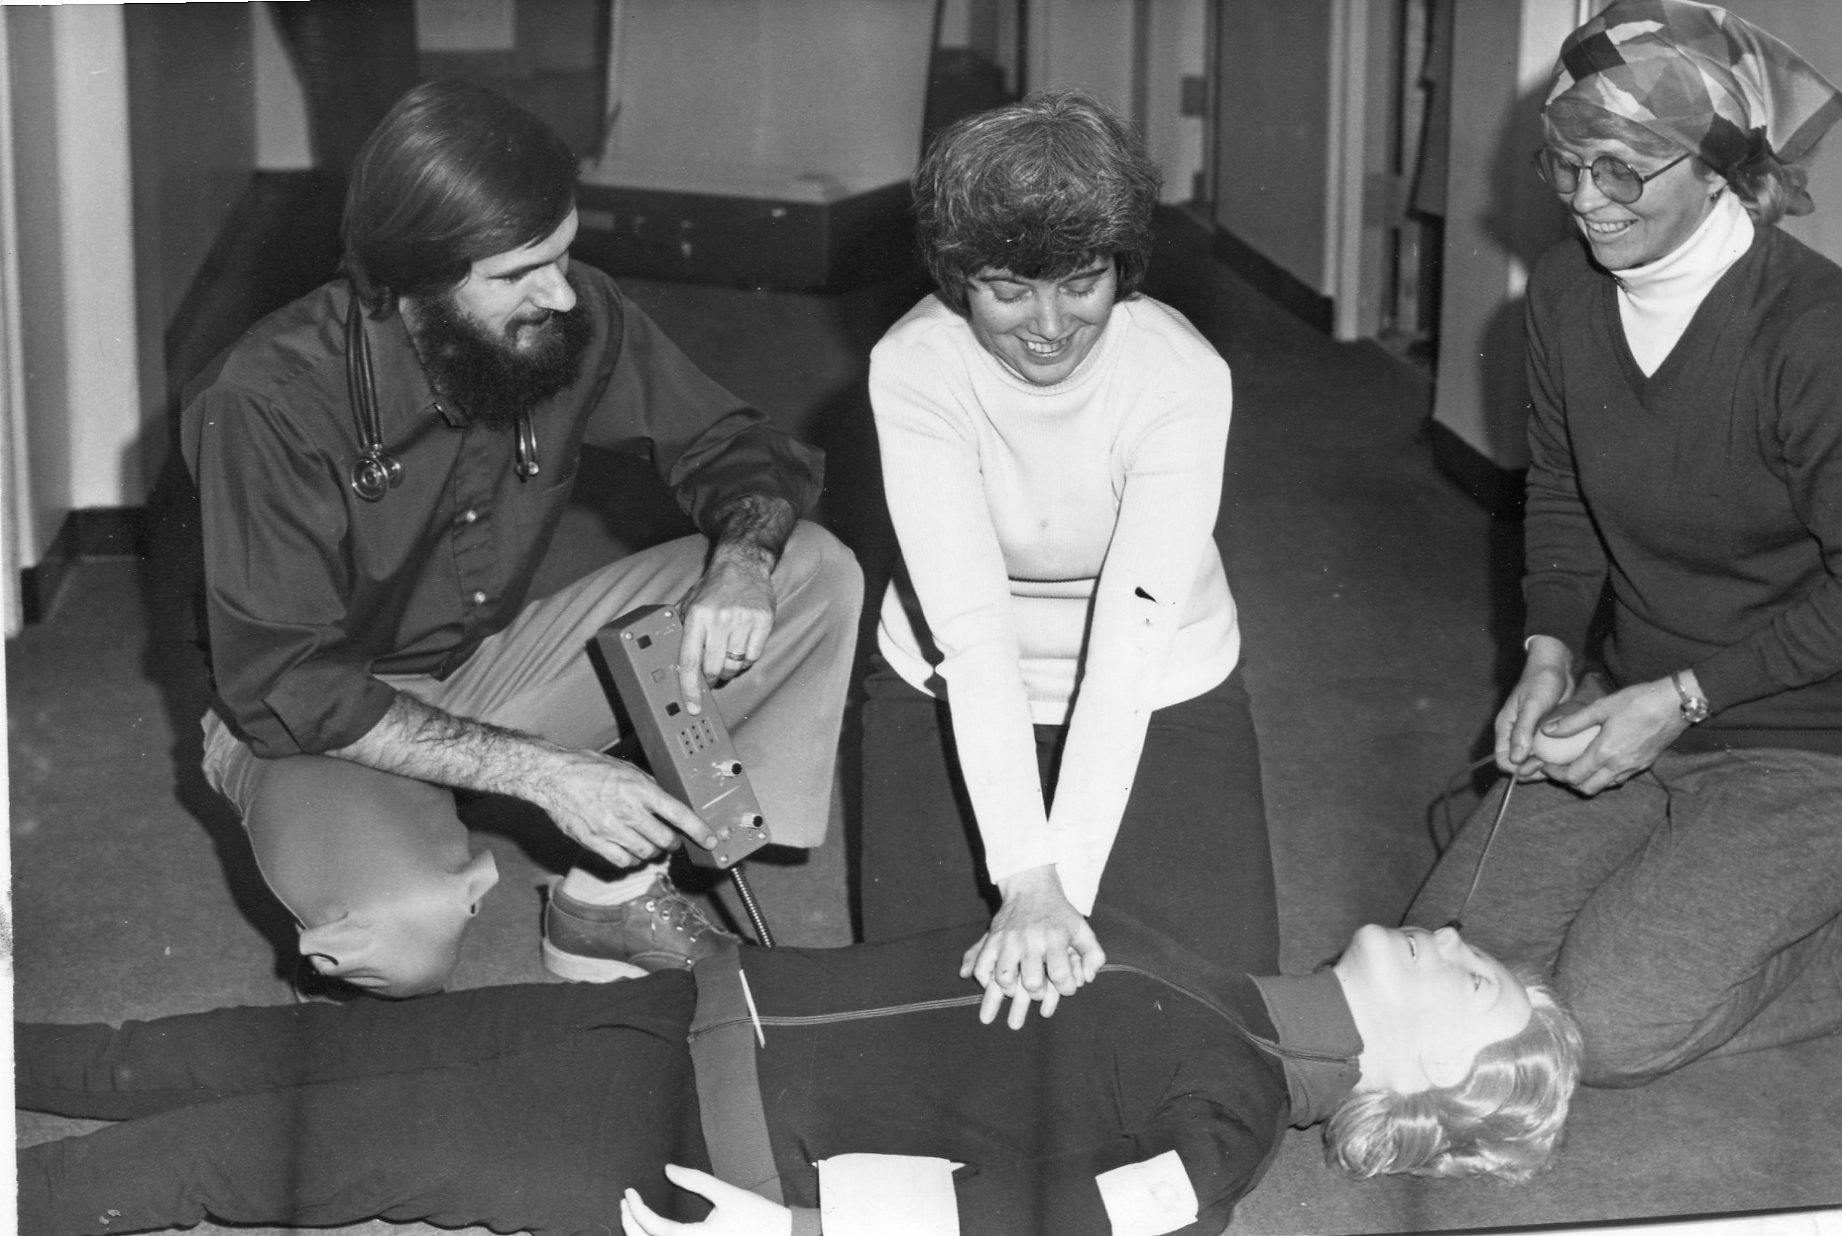 Dr. David Johnson was instructing Carol Merrihew and Jane Johnson on the techniques of CPR with Resuscitation Annie in the 1980s.